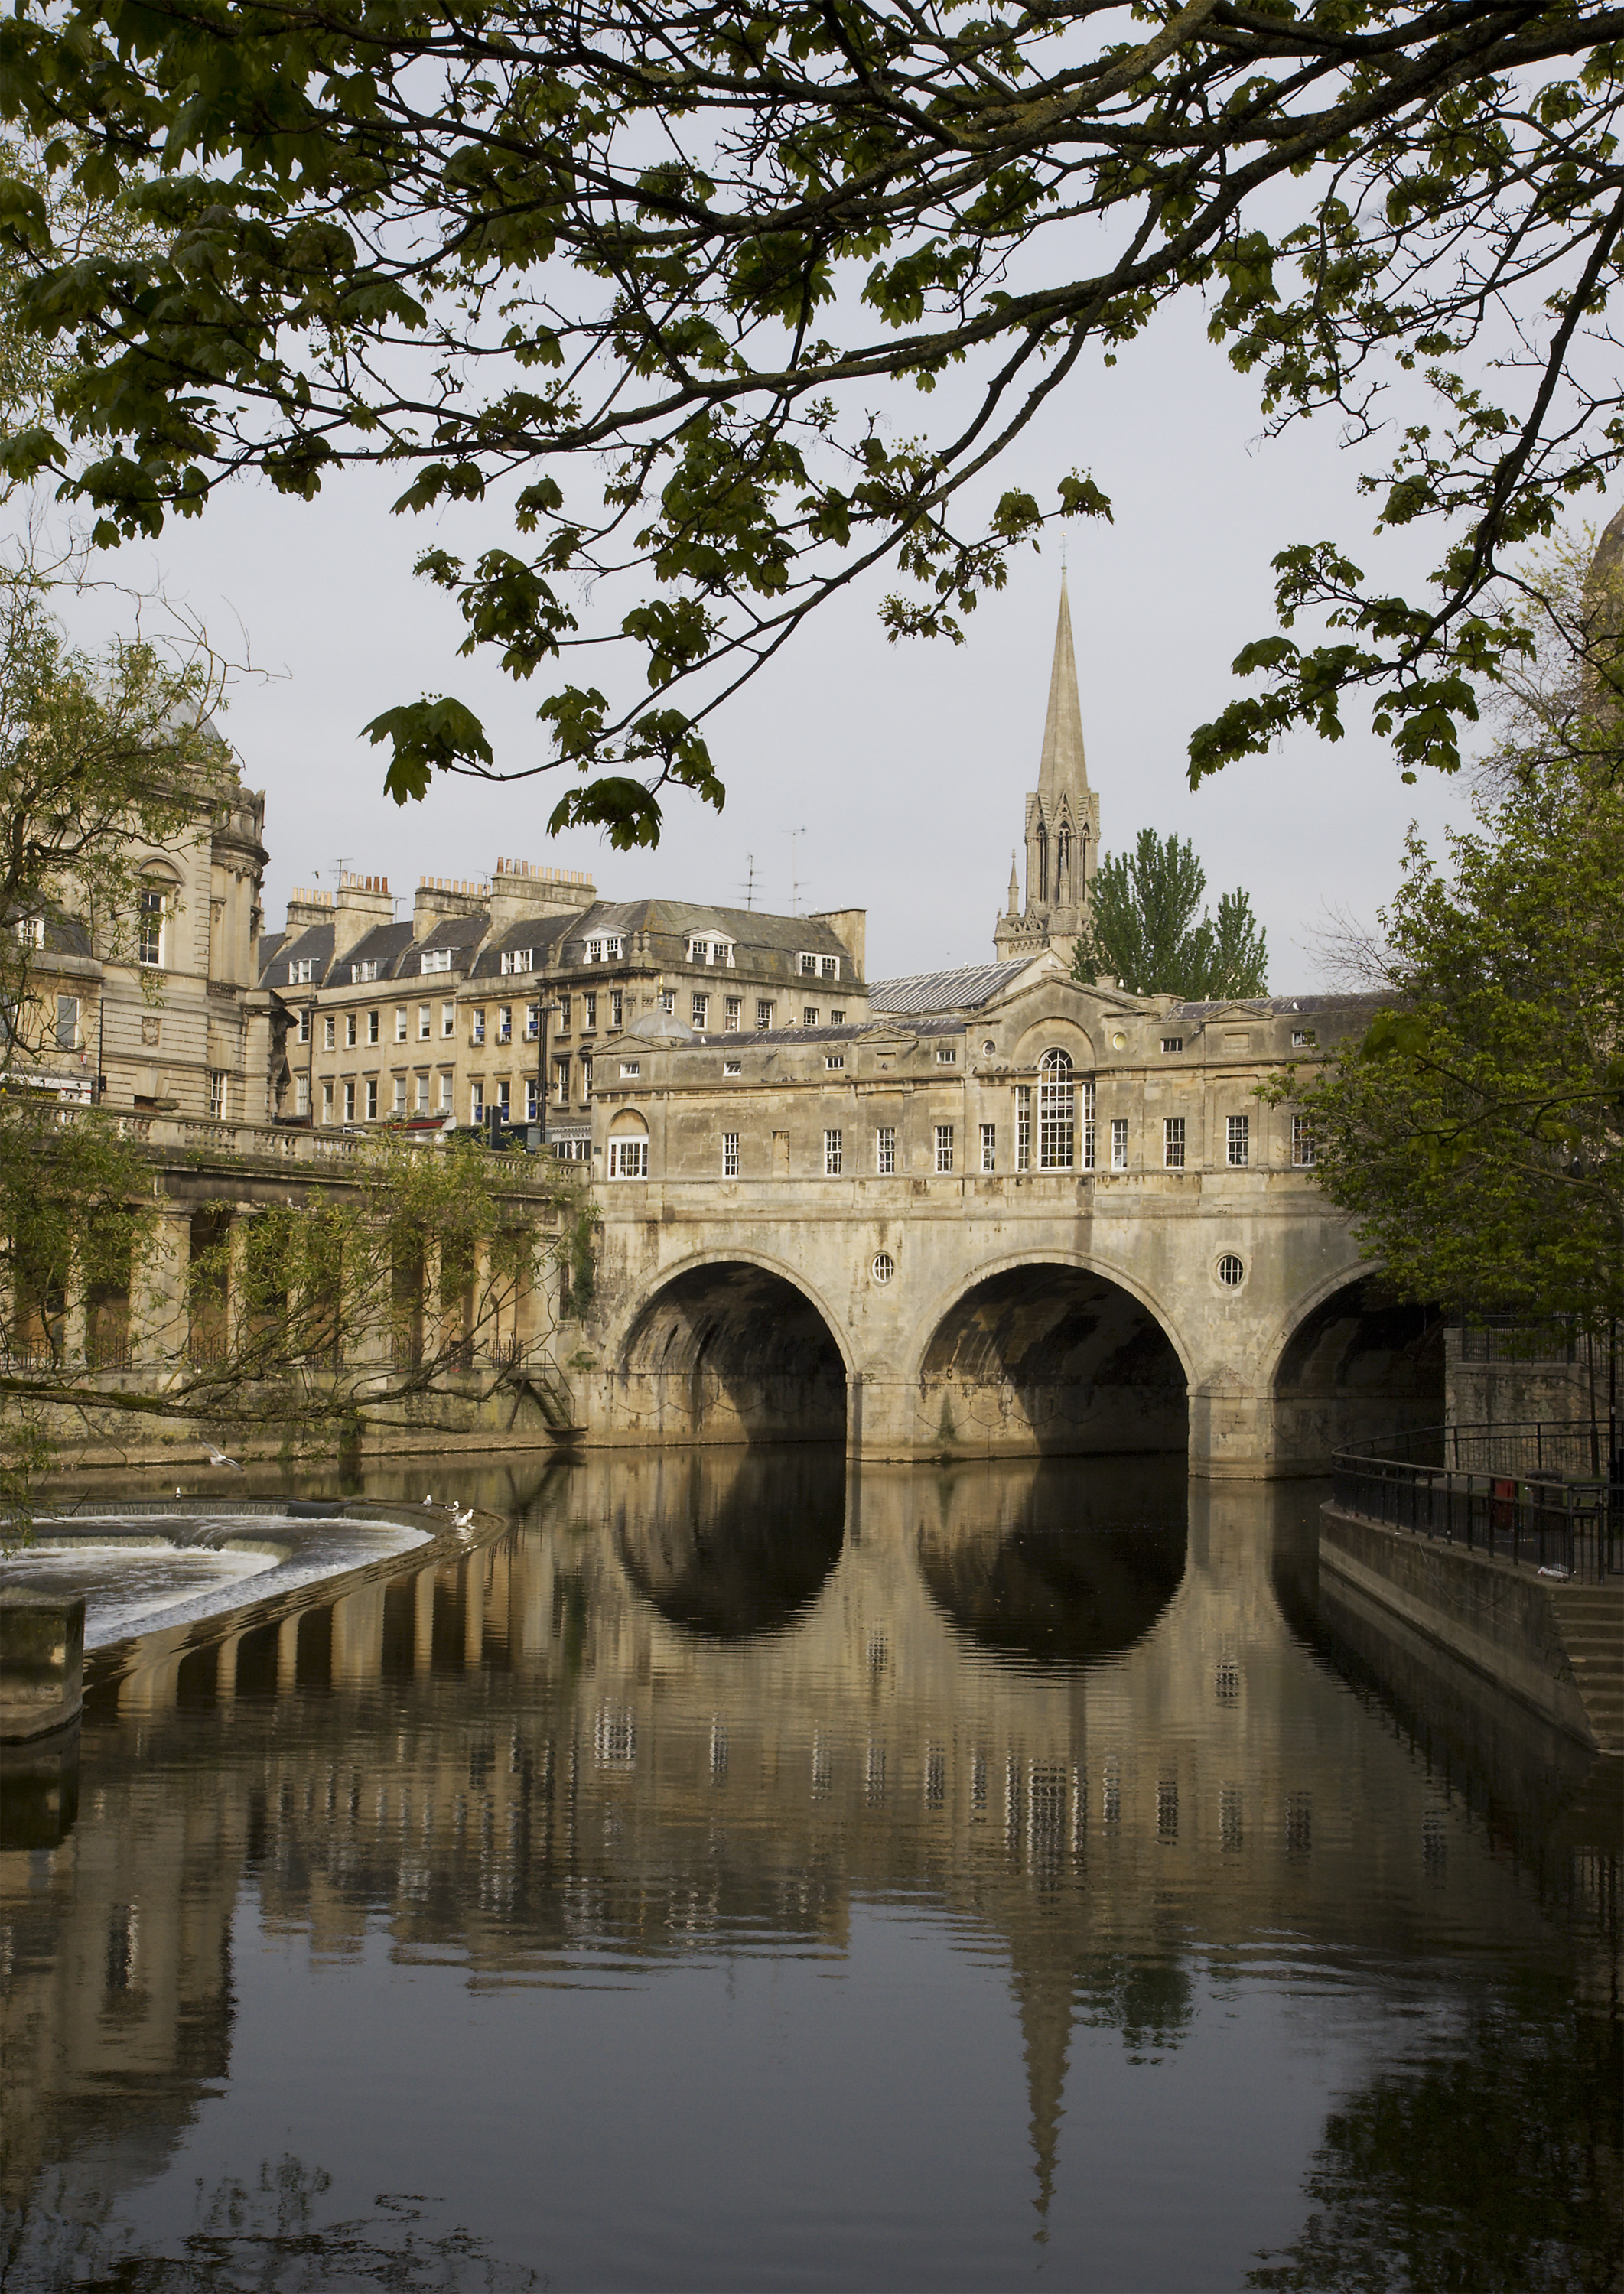 Pulteney Bridge - Wikipedia, the free encyclopedia